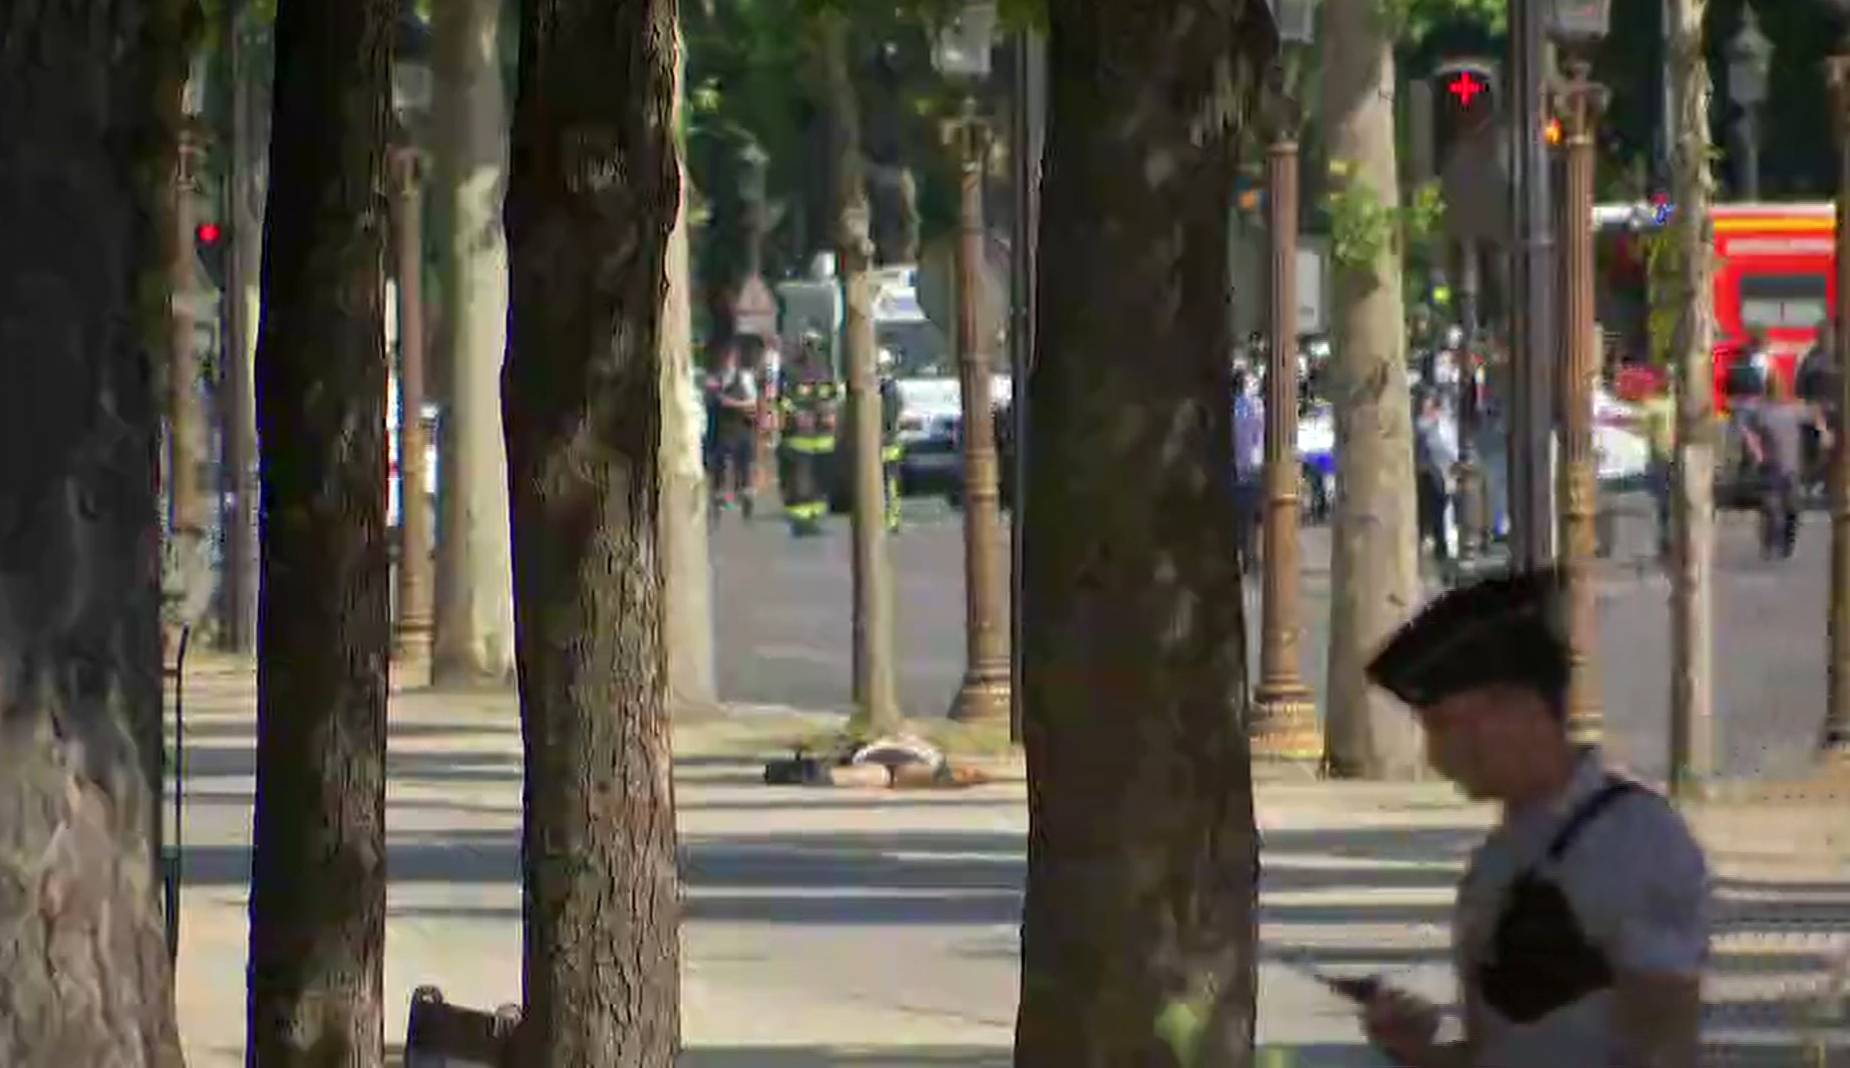 A person is seen on the ground as a police officer is seen in the foreground on the Champs Elysees avenue in Paris, France, Monday. France's anti-terrorism prosecutor has opened an investigation into the ramming of a police vehicle on Paris' Champs-Élysées avenue. Authorities say a driver has rammed his car into a police vehicle in the Champs-Élysées shopping district. They say he has been arrested after being injured in a subsequent apparent clash with police. The condition of the person on the ground is not known.